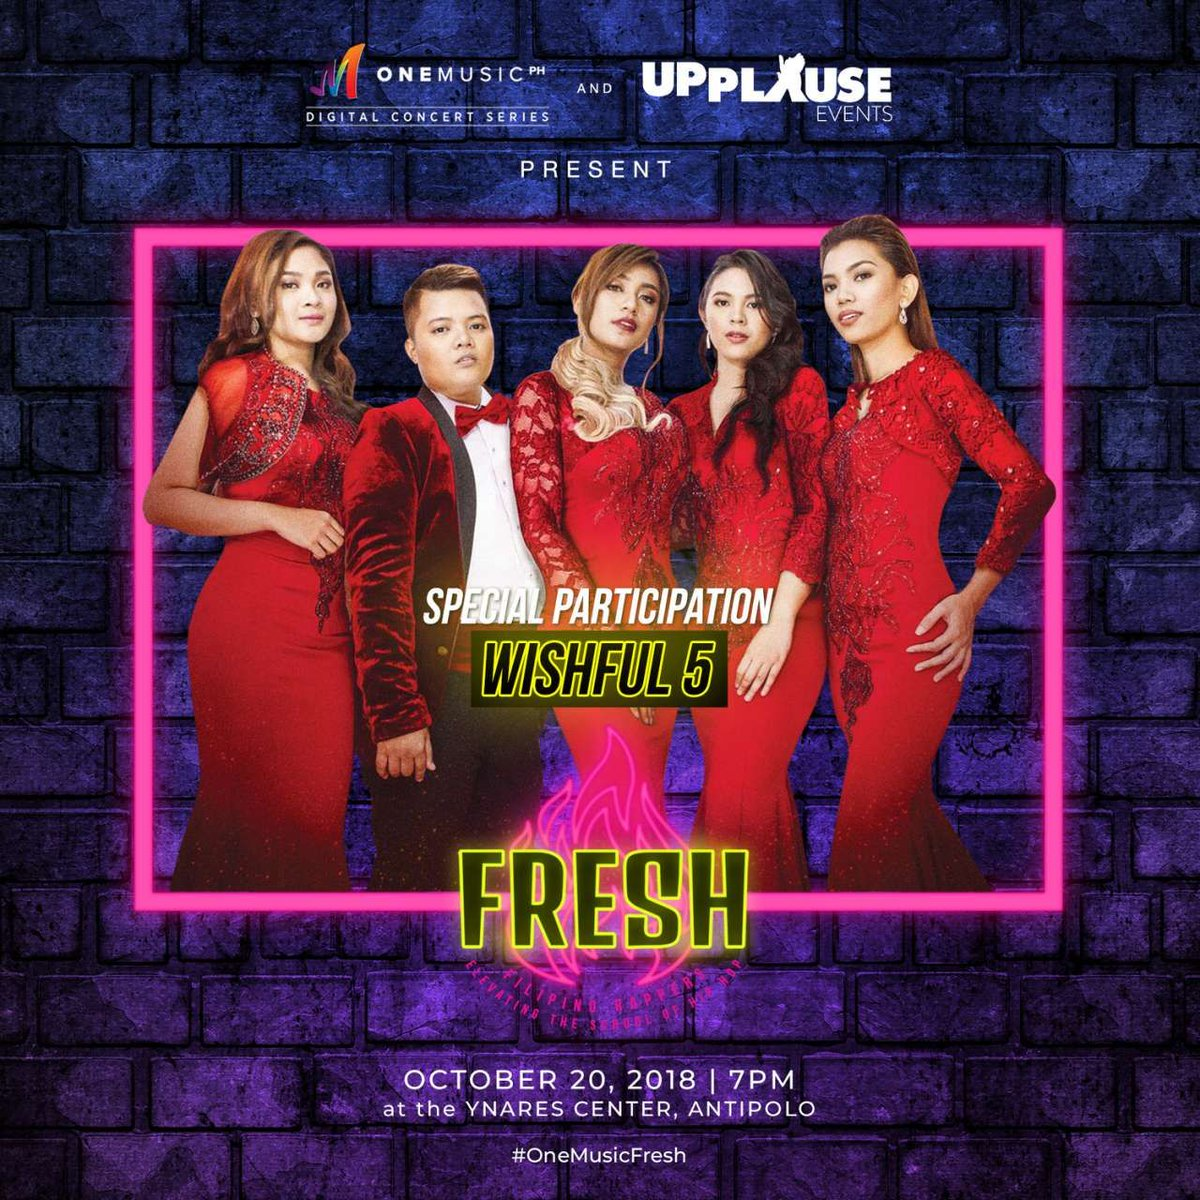 NEW GUEST ALERT! Catch a special participation by The Wishfuls this October 20 for #OneMusicFRESH! May tickets ka na ba? Get them over at bit.ly/KTXOneMusicFRE… or bit.ly/SMOneMusicFRESH